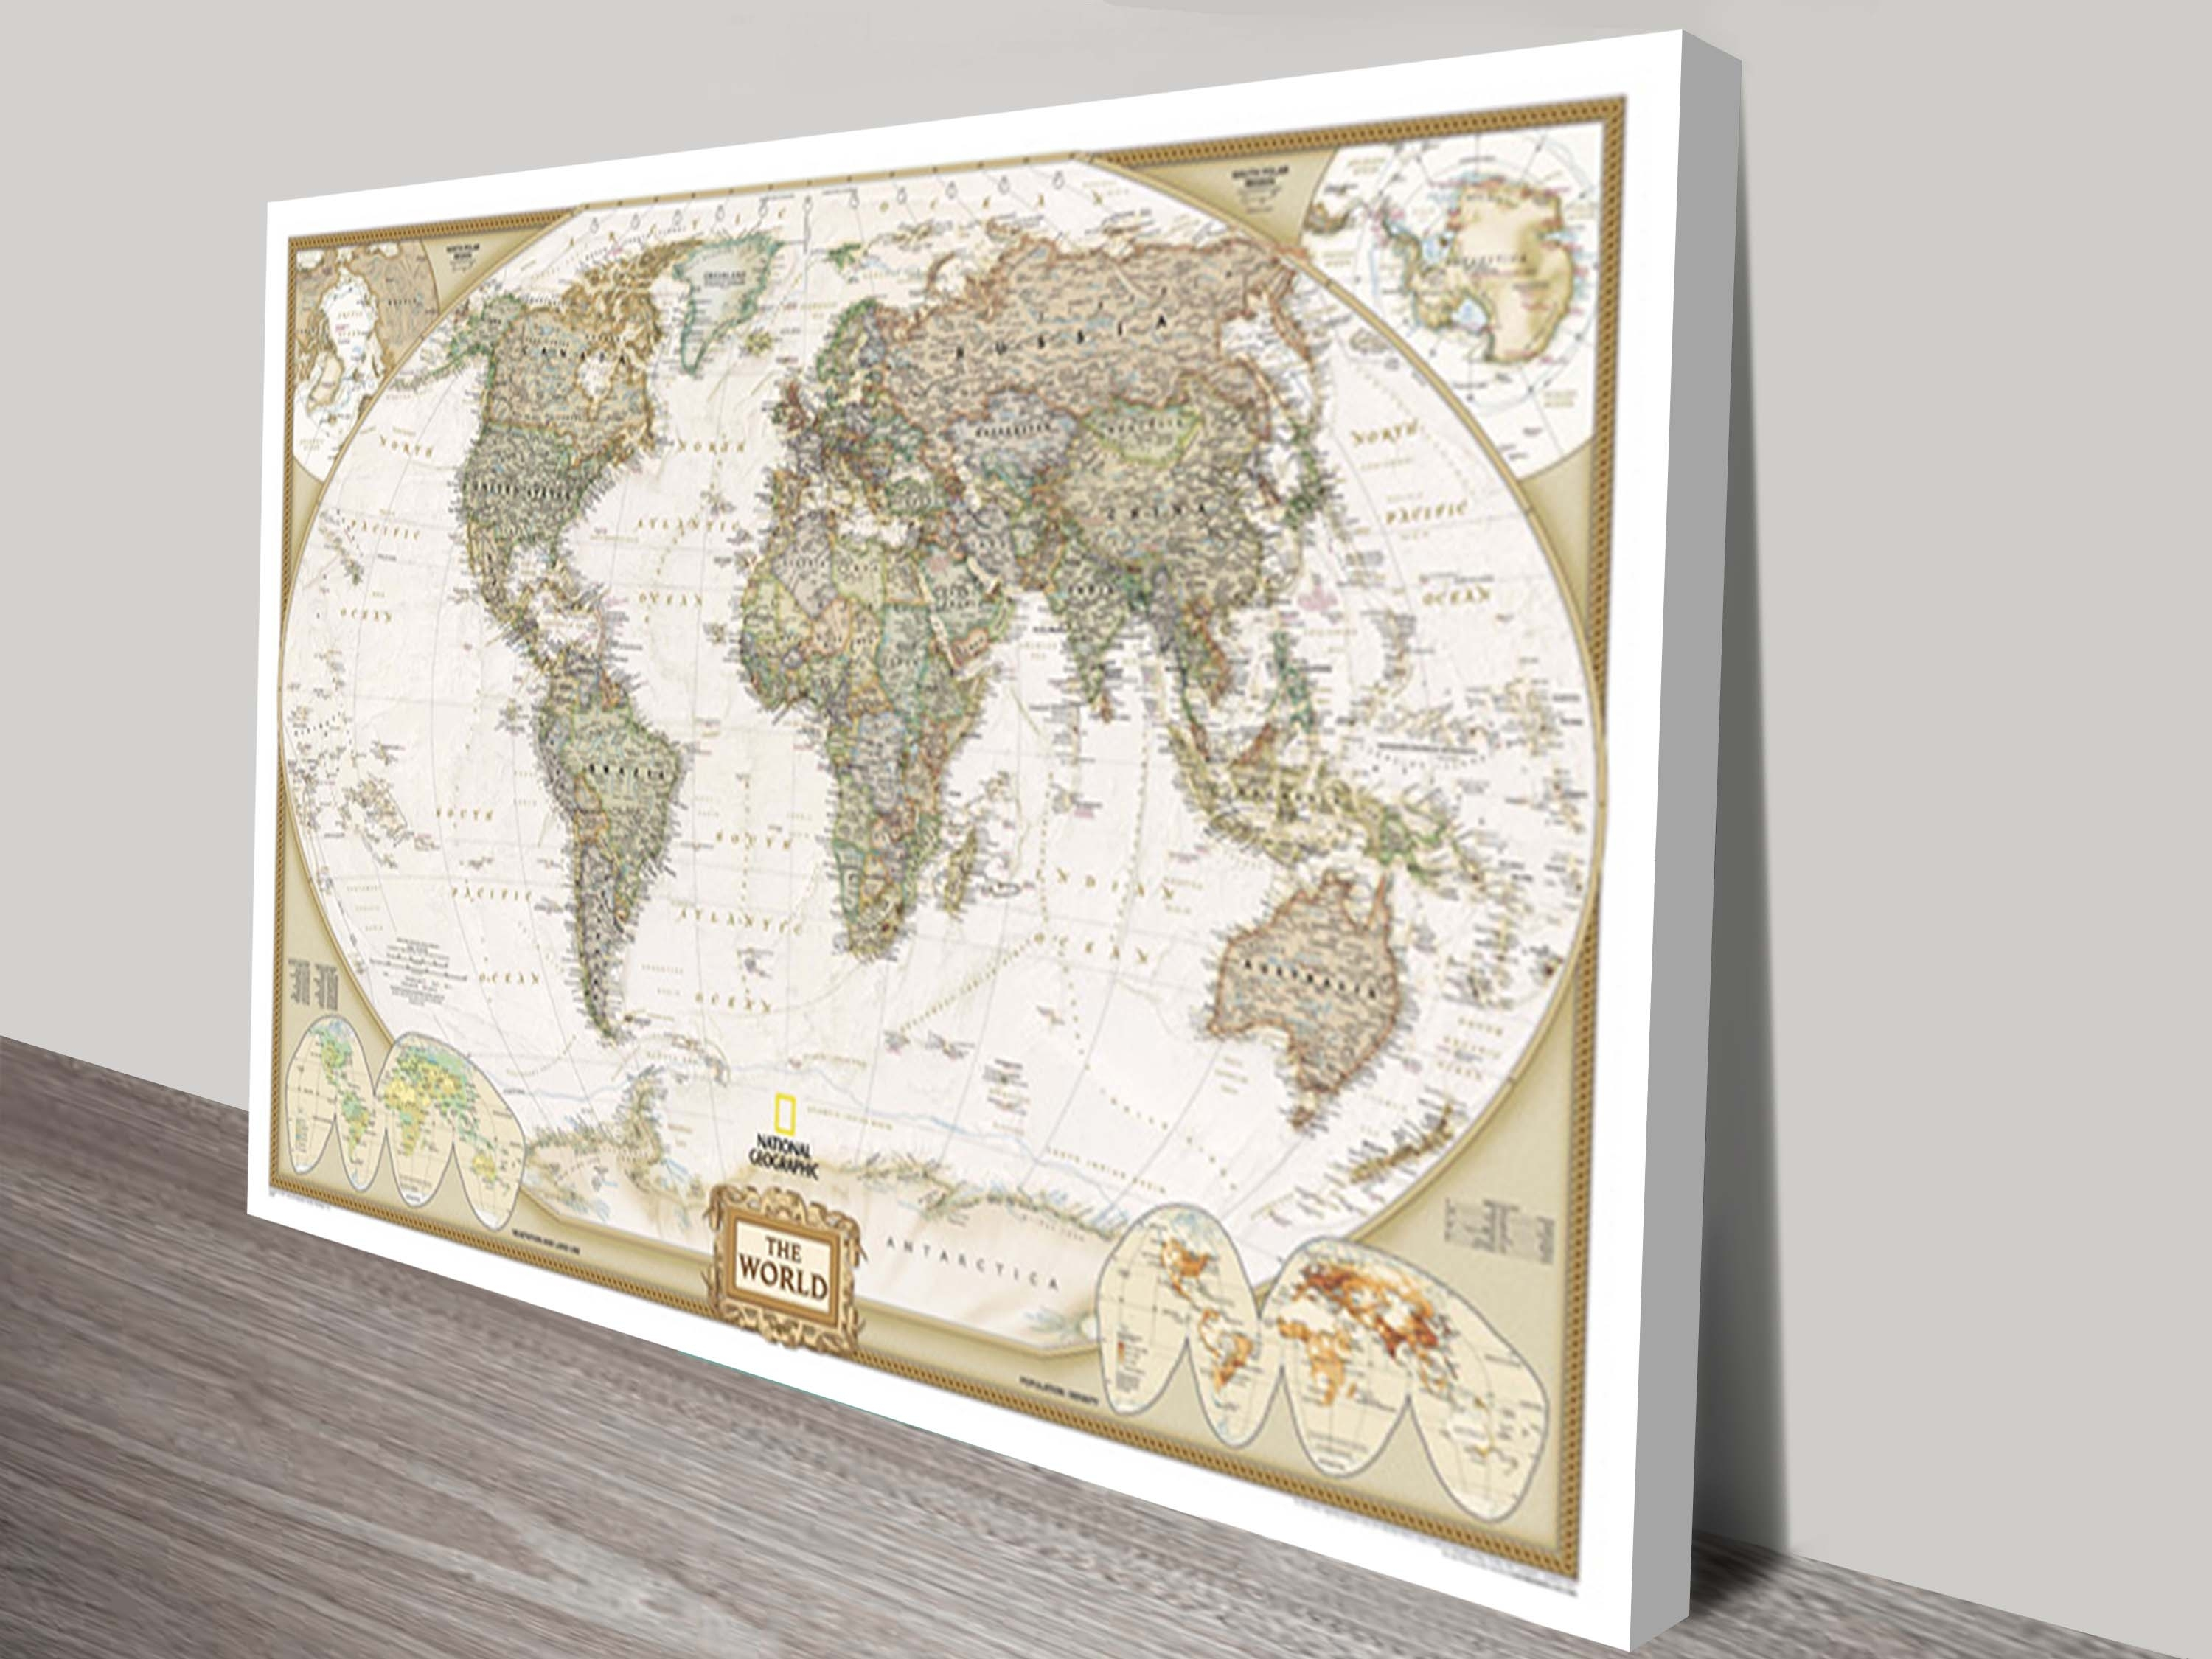 World Map Canvas Wall Art Framed Maps Sydney, Wall Art Canvas Prints regarding Map Wall Art Prints (Image 17 of 20)